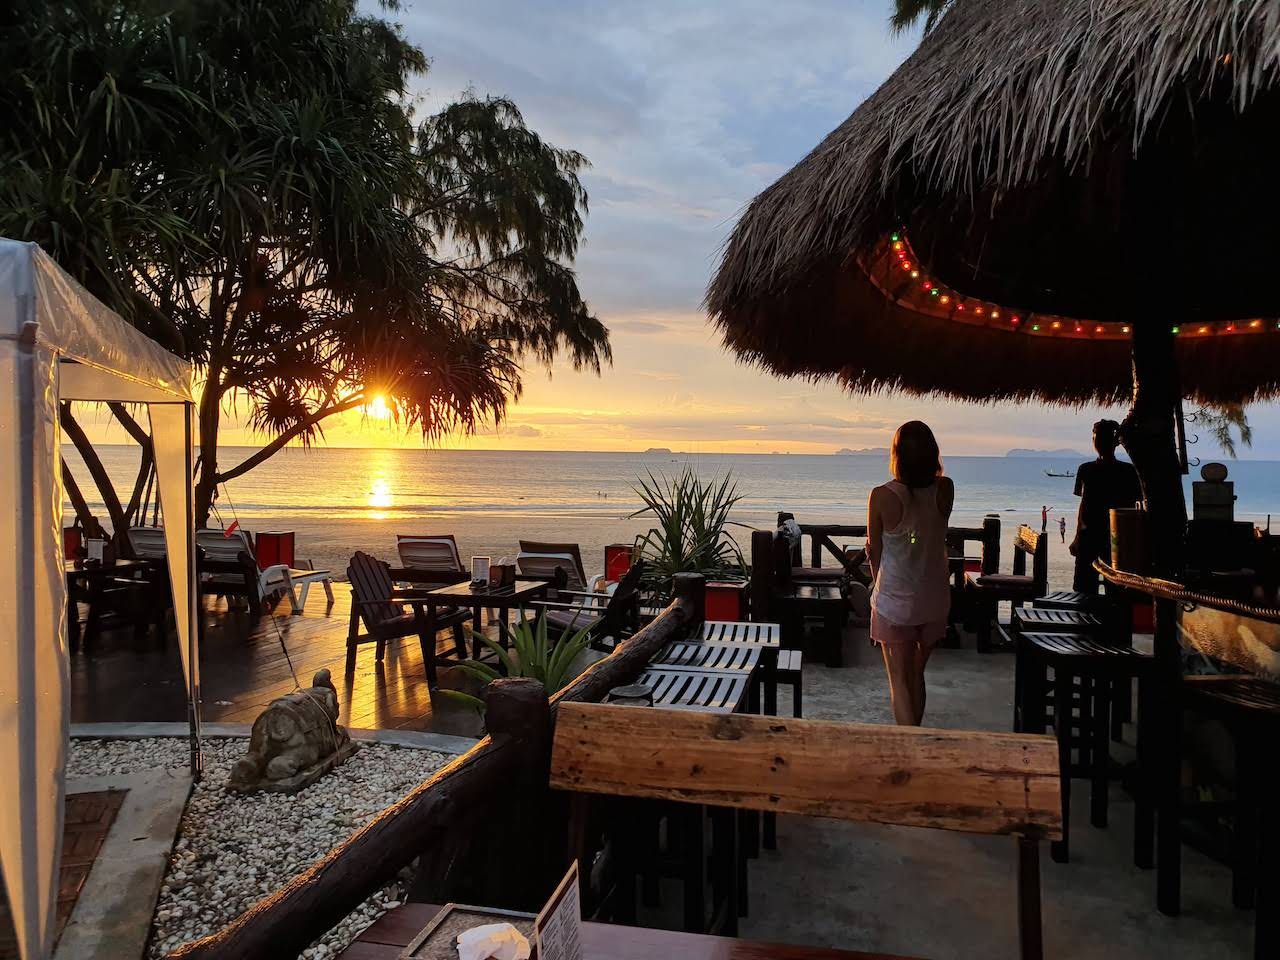 koh lanta castaway resort sunset